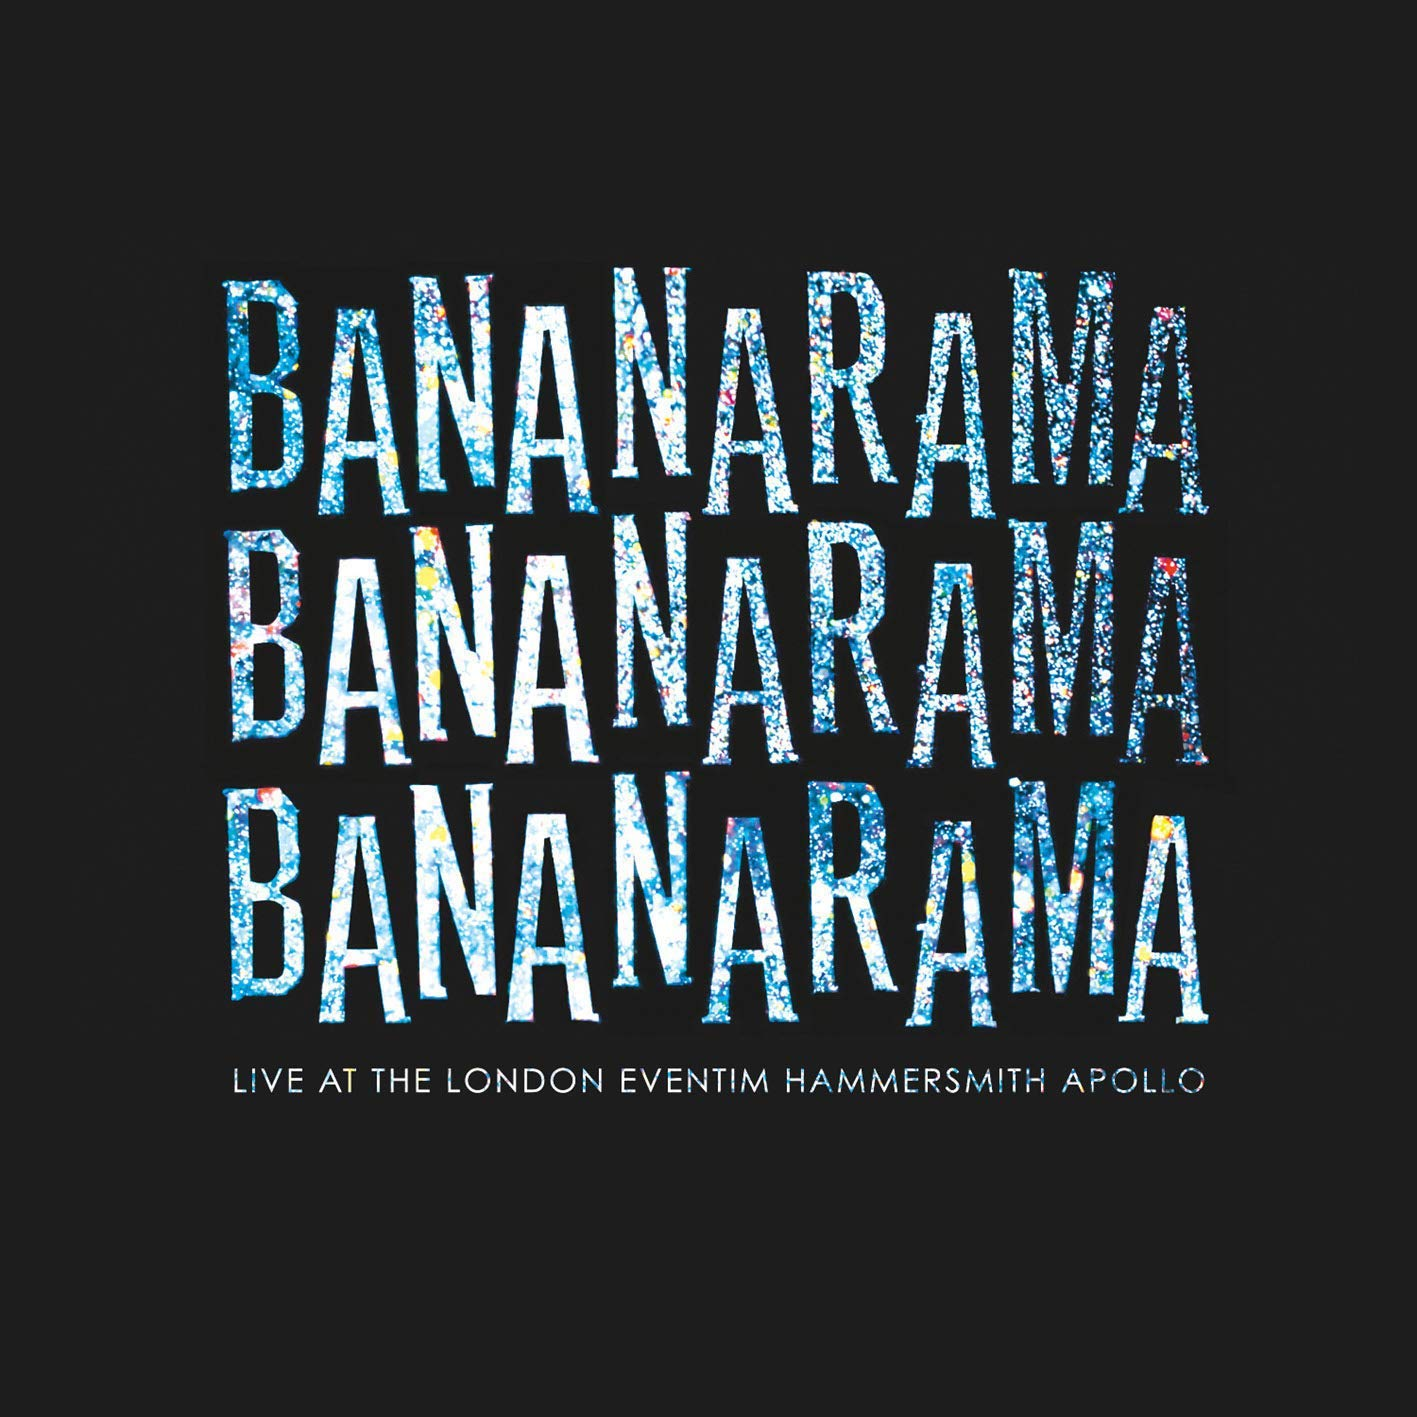 Live At The London Eventim Hammersmith Apollo by Liveherenow